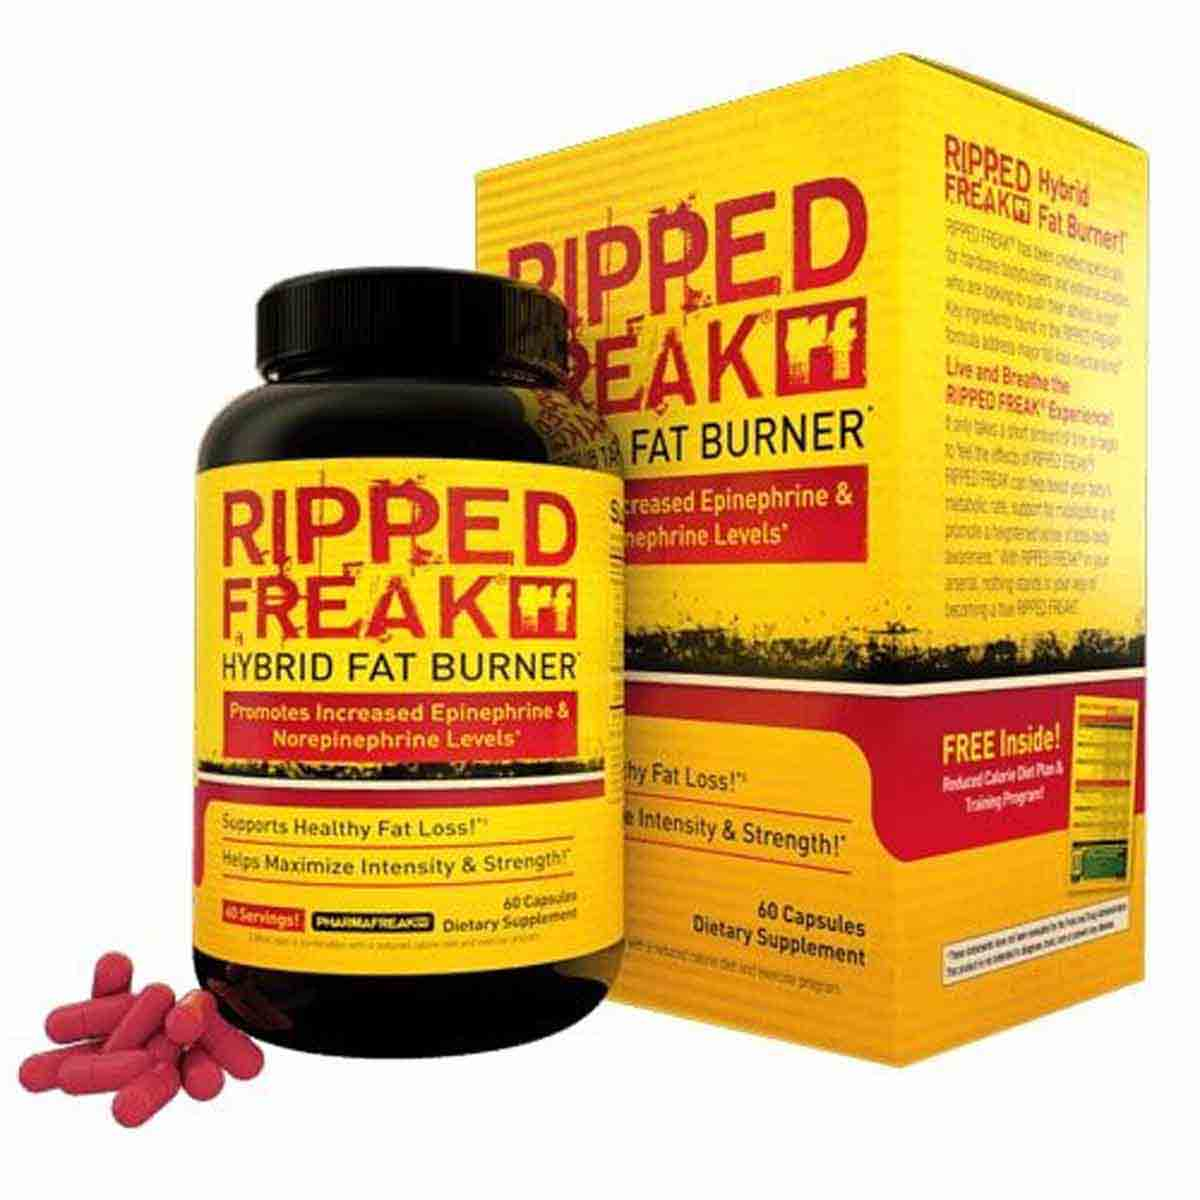 Ripped Freak supplements